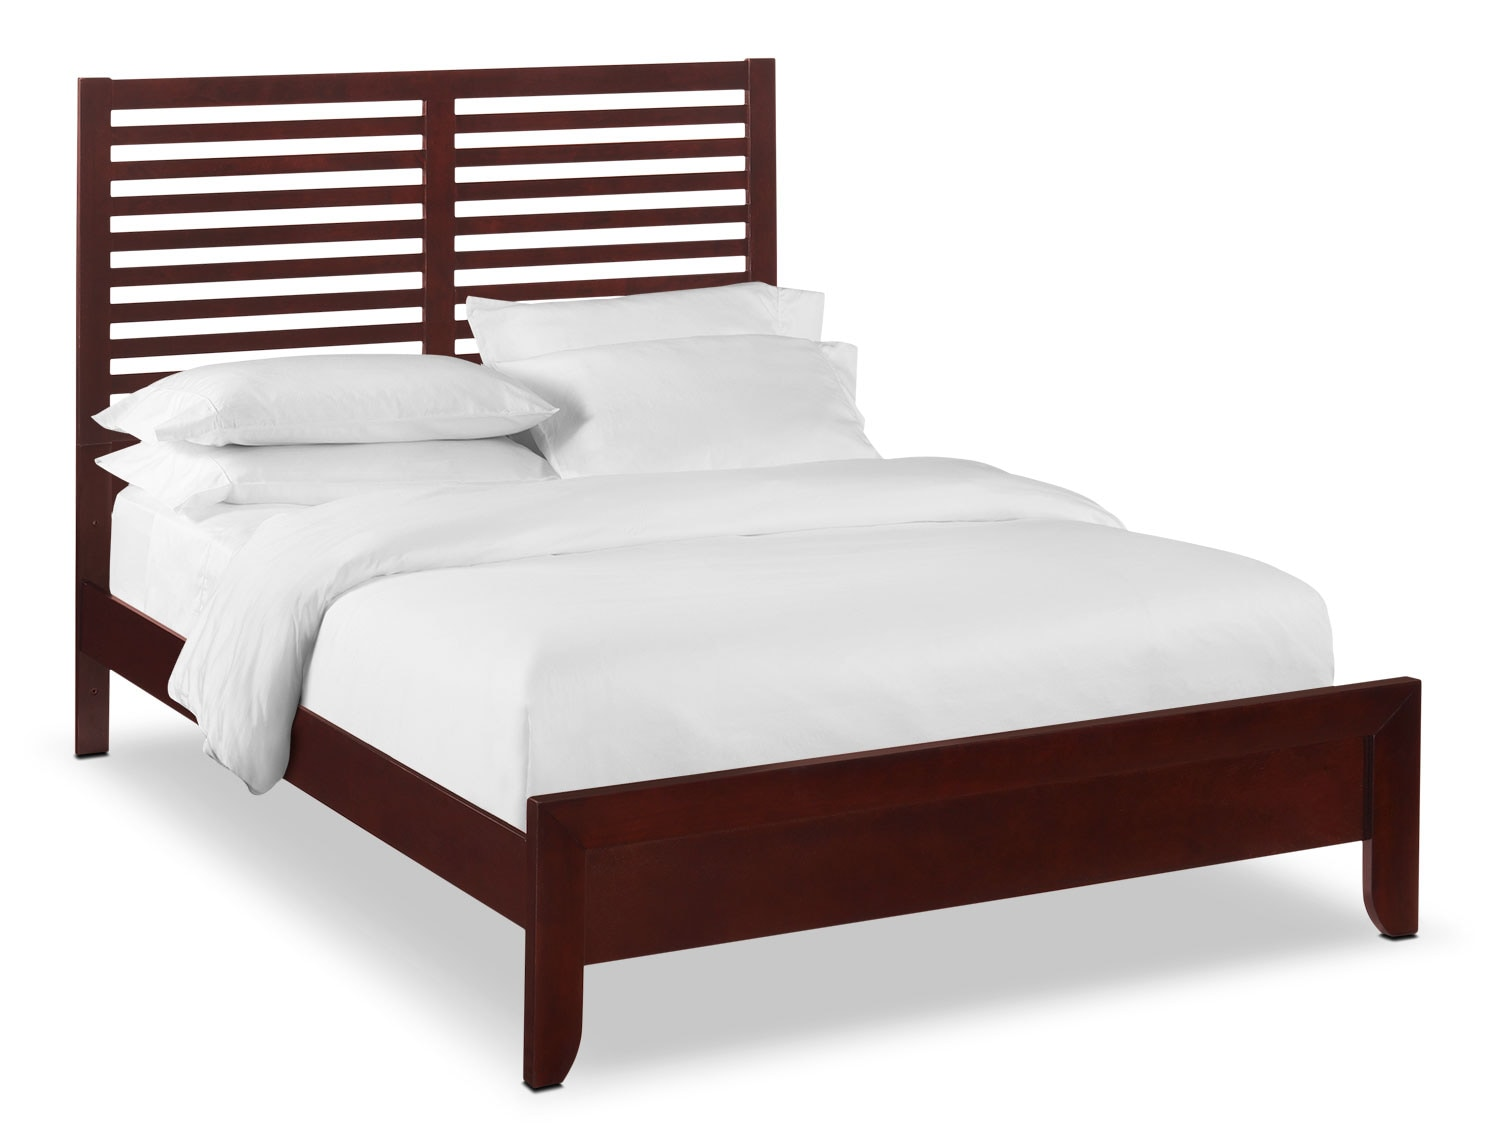 Braden Queen Slat Bed - Merlot